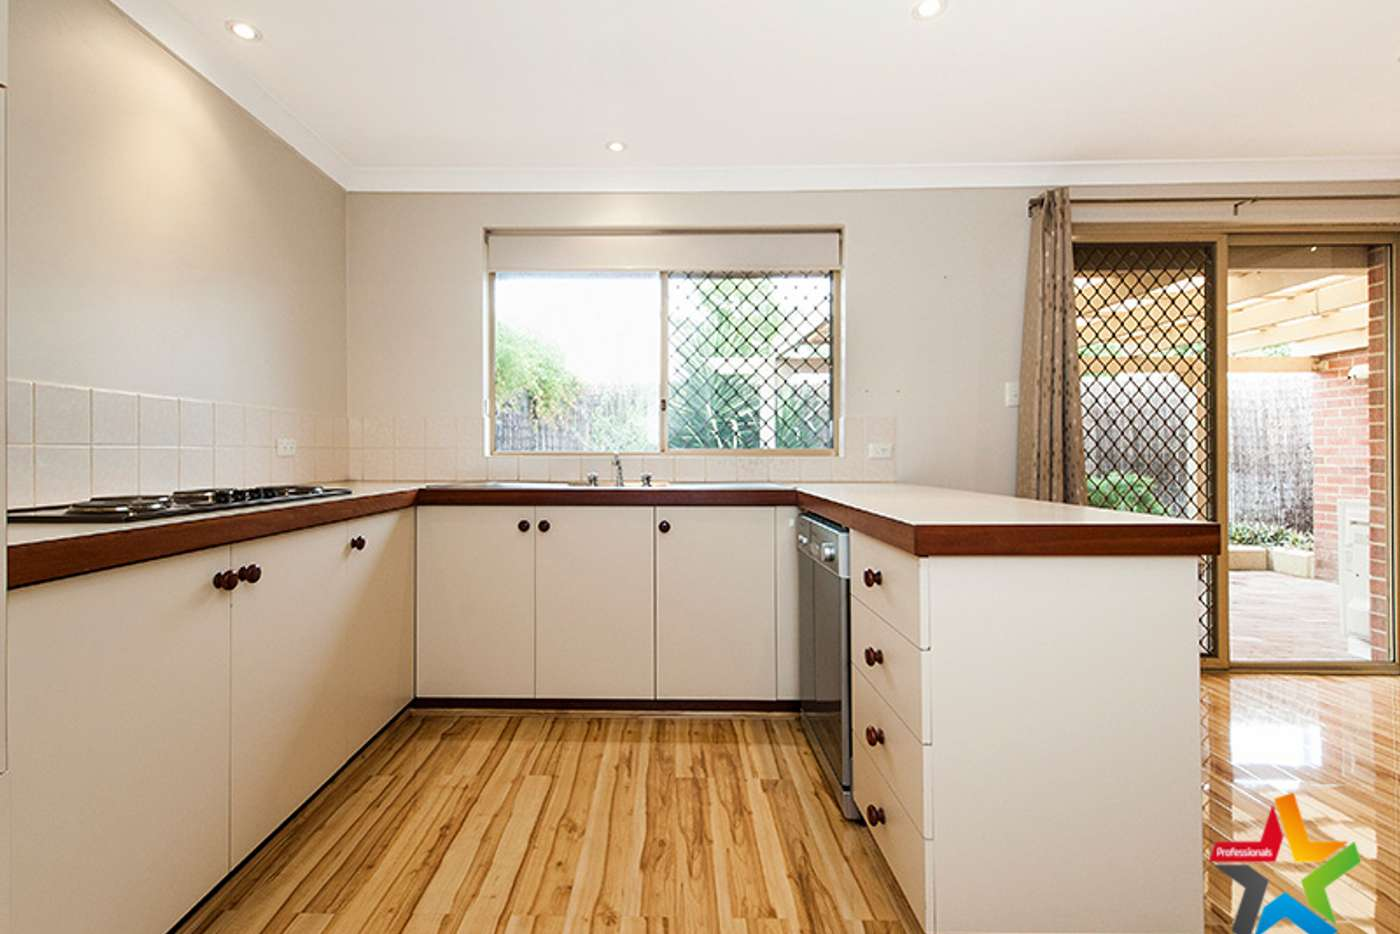 Seventh view of Homely house listing, 4/10 East Street, Guildford WA 6055